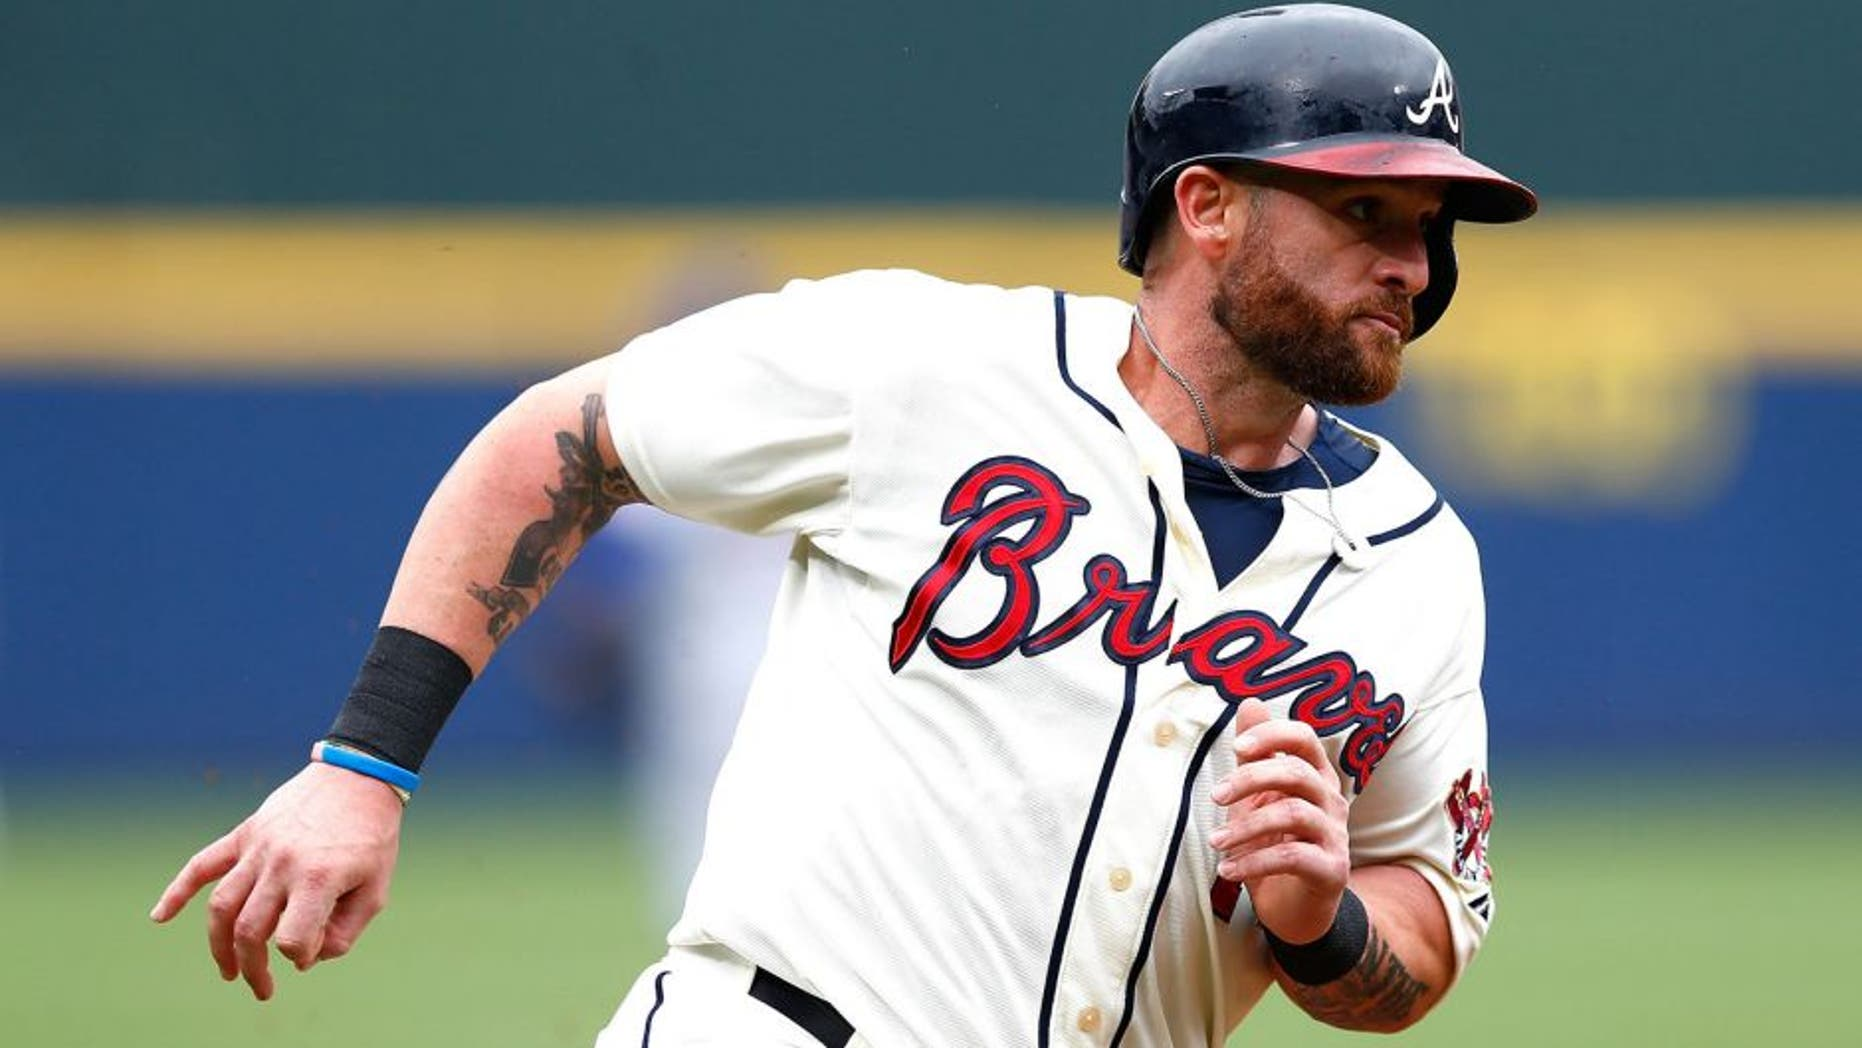 ATLANTA, GA - APRIL 12: Jonny Gomes #7 of the Atlanta Braves in action against the New York Mets during the Braves opening series at Turner Field on April 12, 2015 in Atlanta, Georgia. (Photo by Kevin C. Cox/Getty Images)